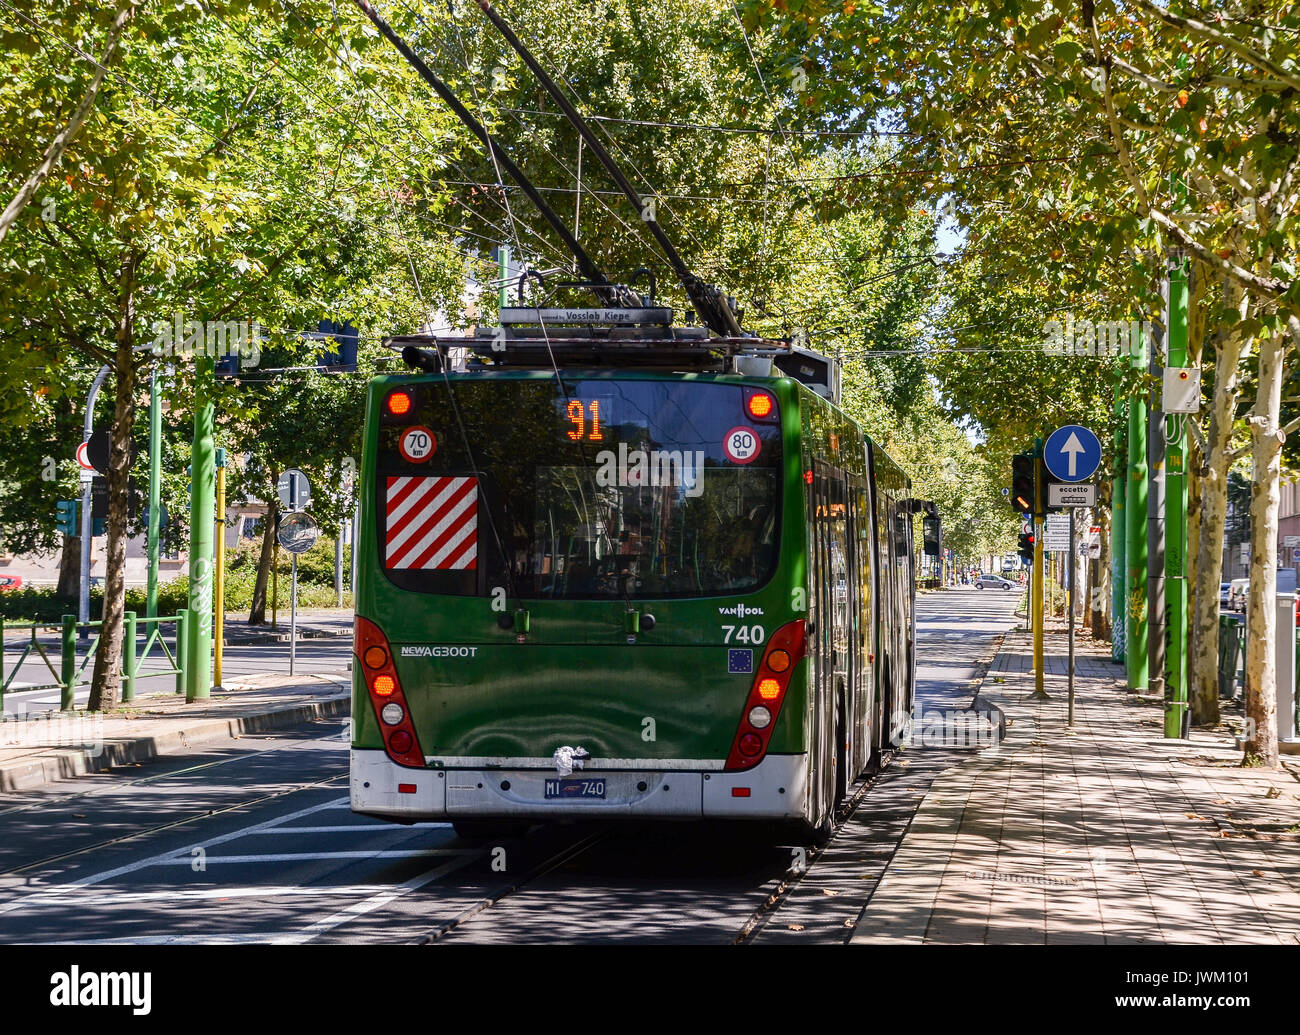 The number 91 bus in Milan, Italy is a 24 hour service on the ring-road of the city - Stock Image